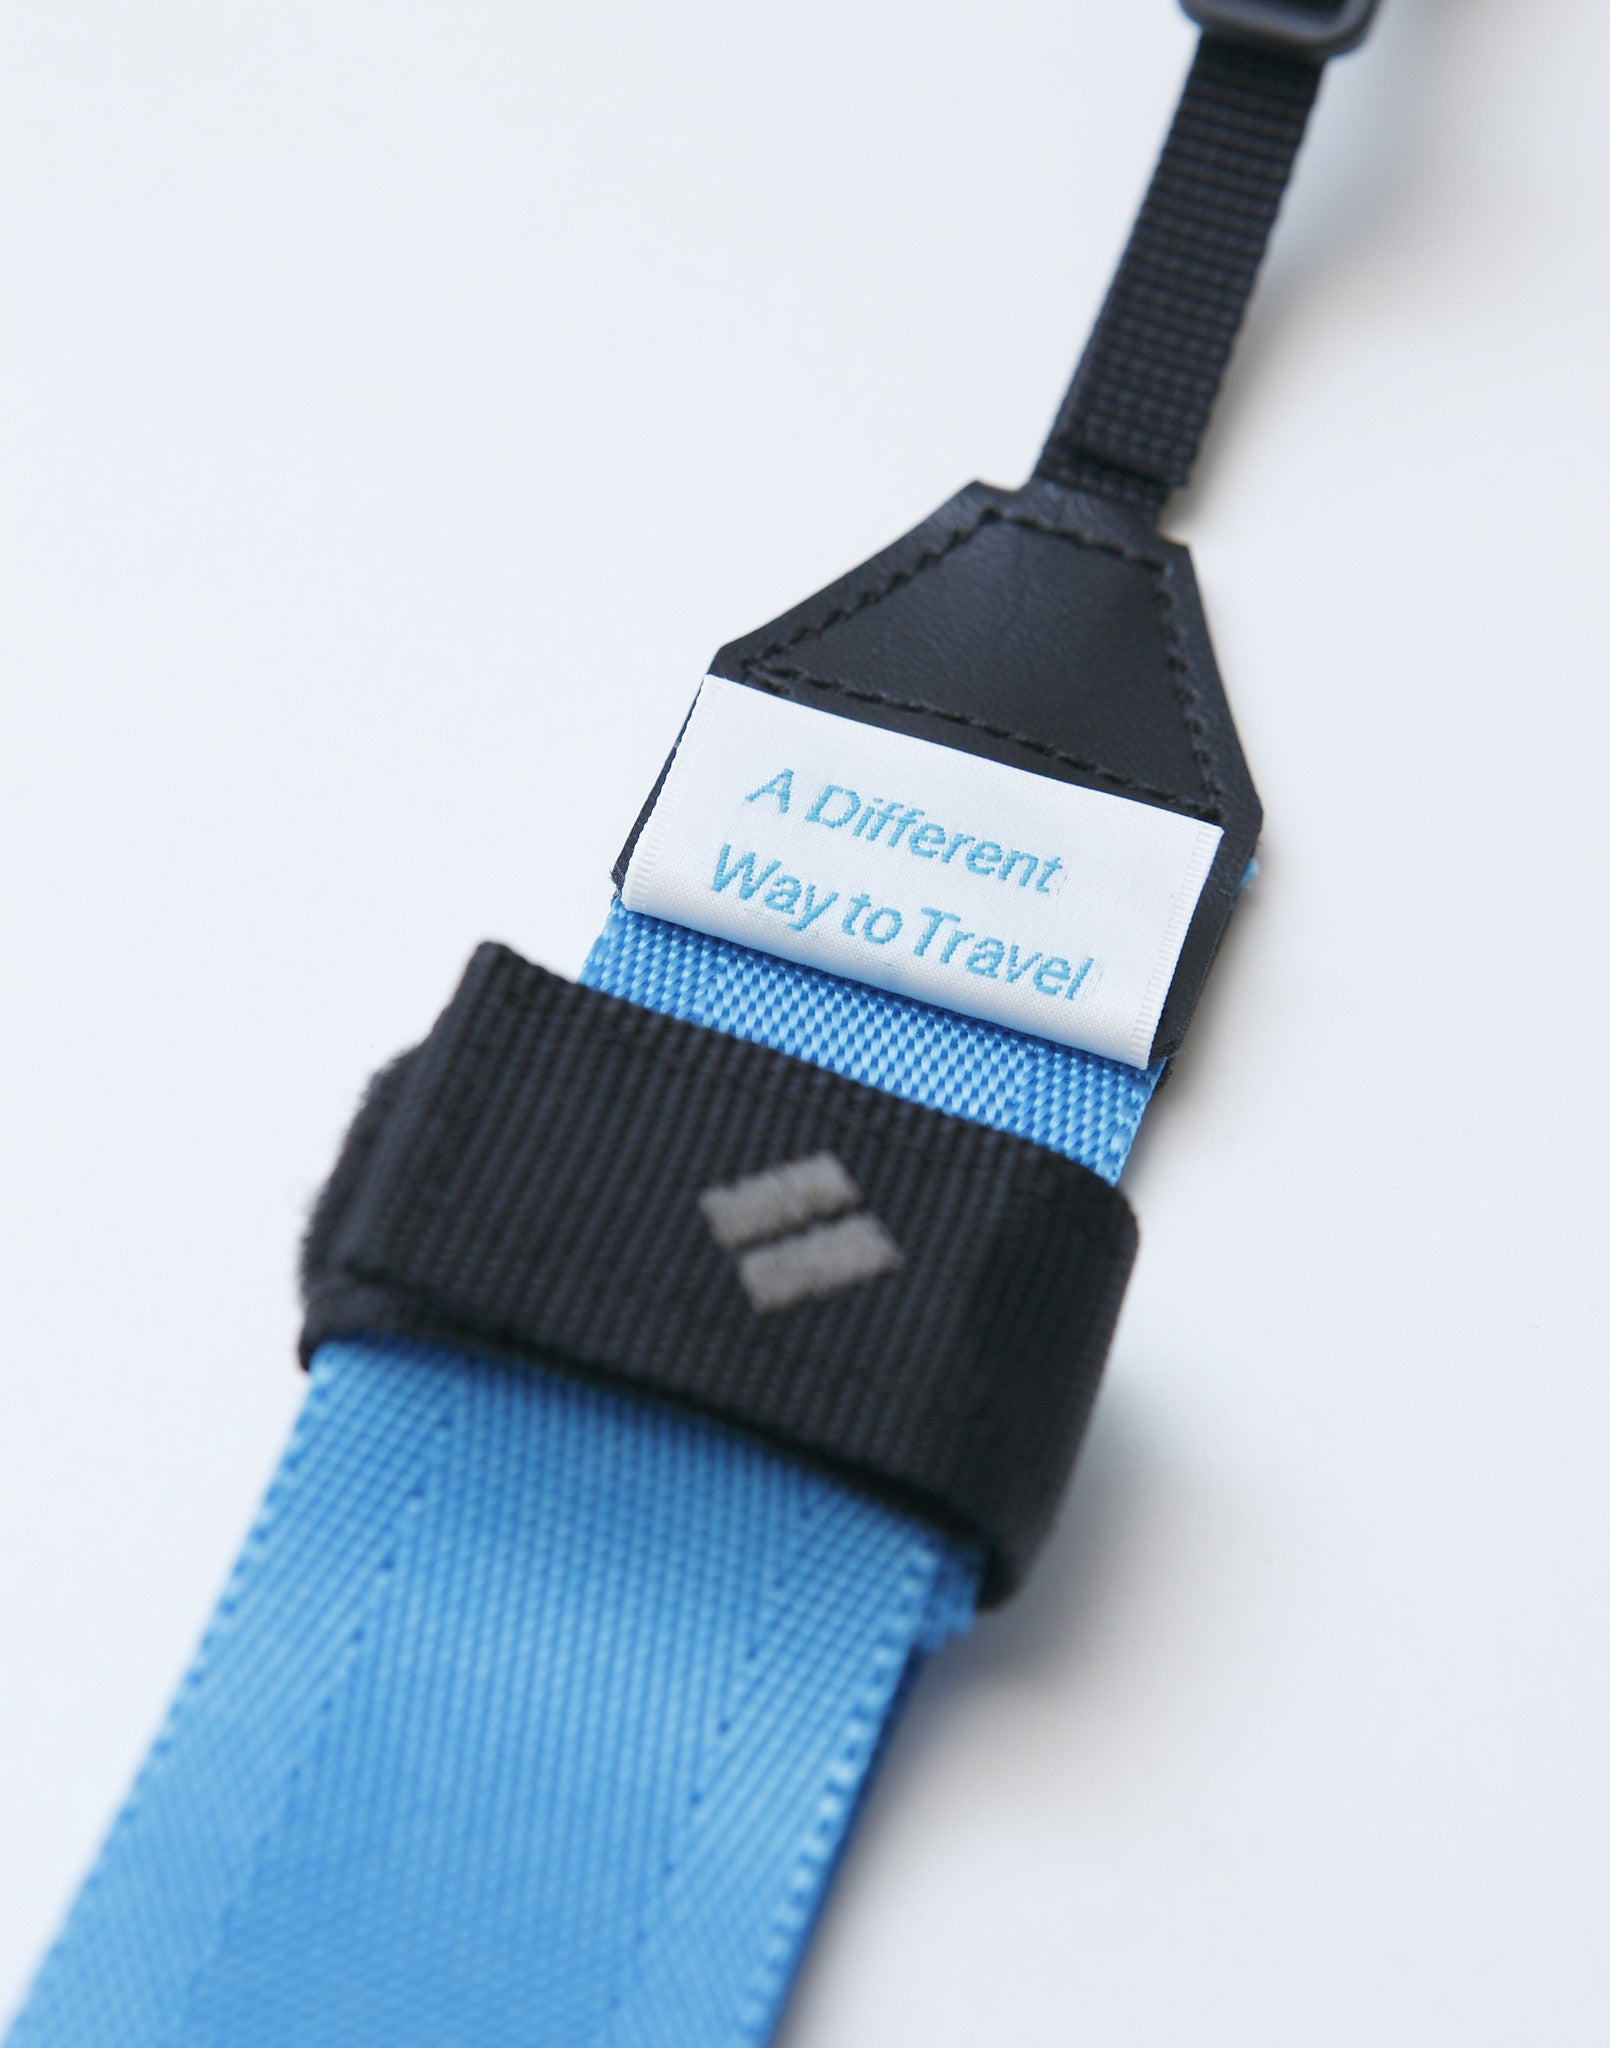 DIAGNL, Papersky ninja camera strap